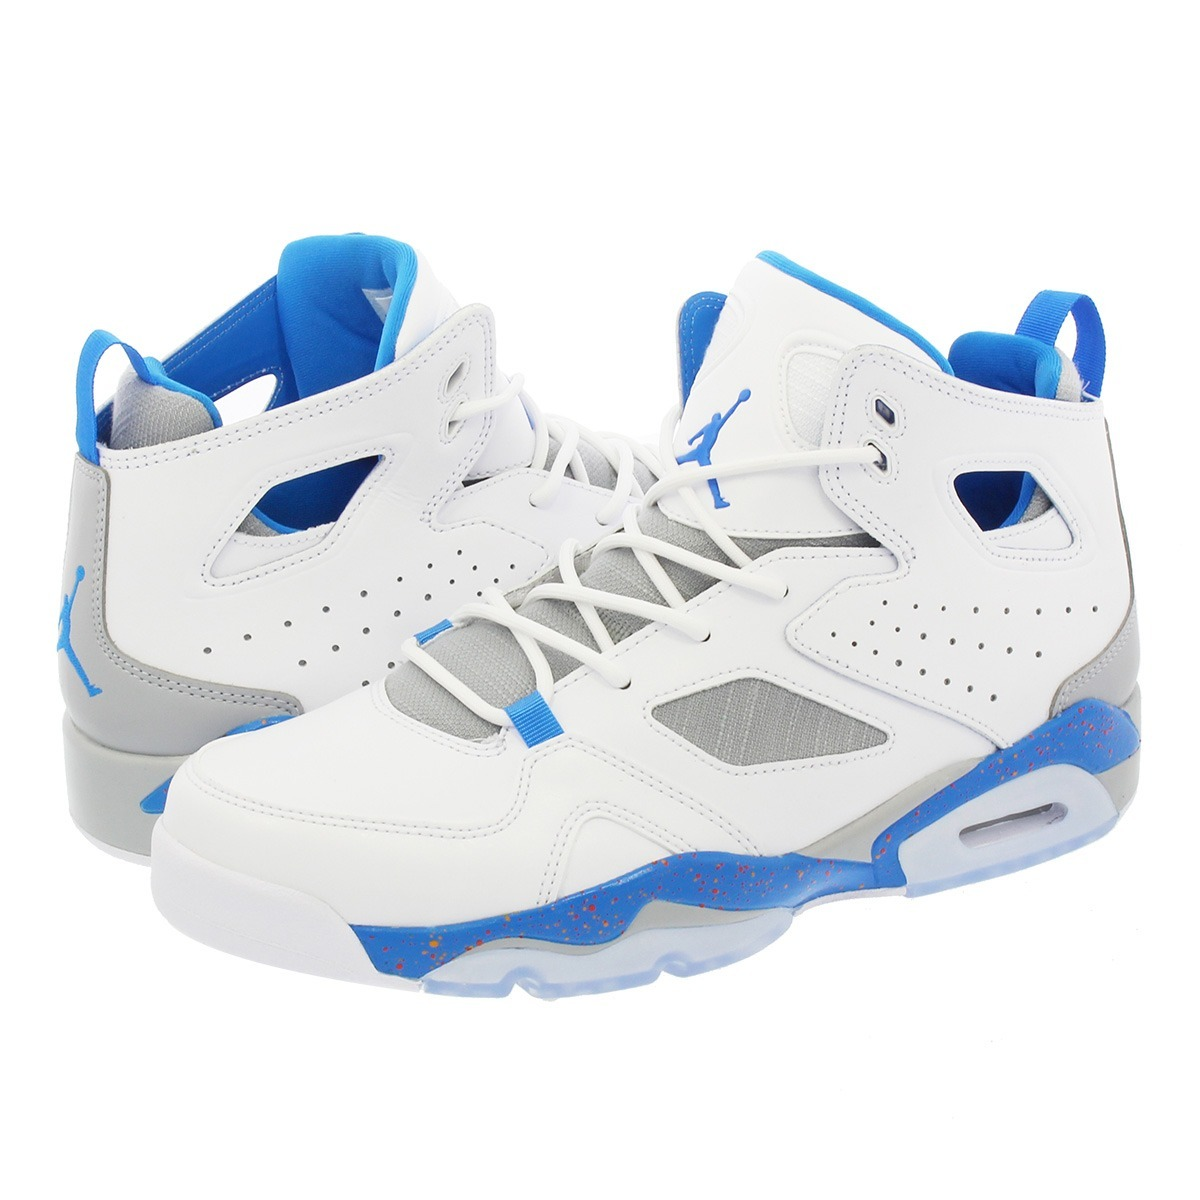 best cheap 6d11e 7a442 tenis nike air jordan flight club 91 555475-104 originales. Cargando zoom.